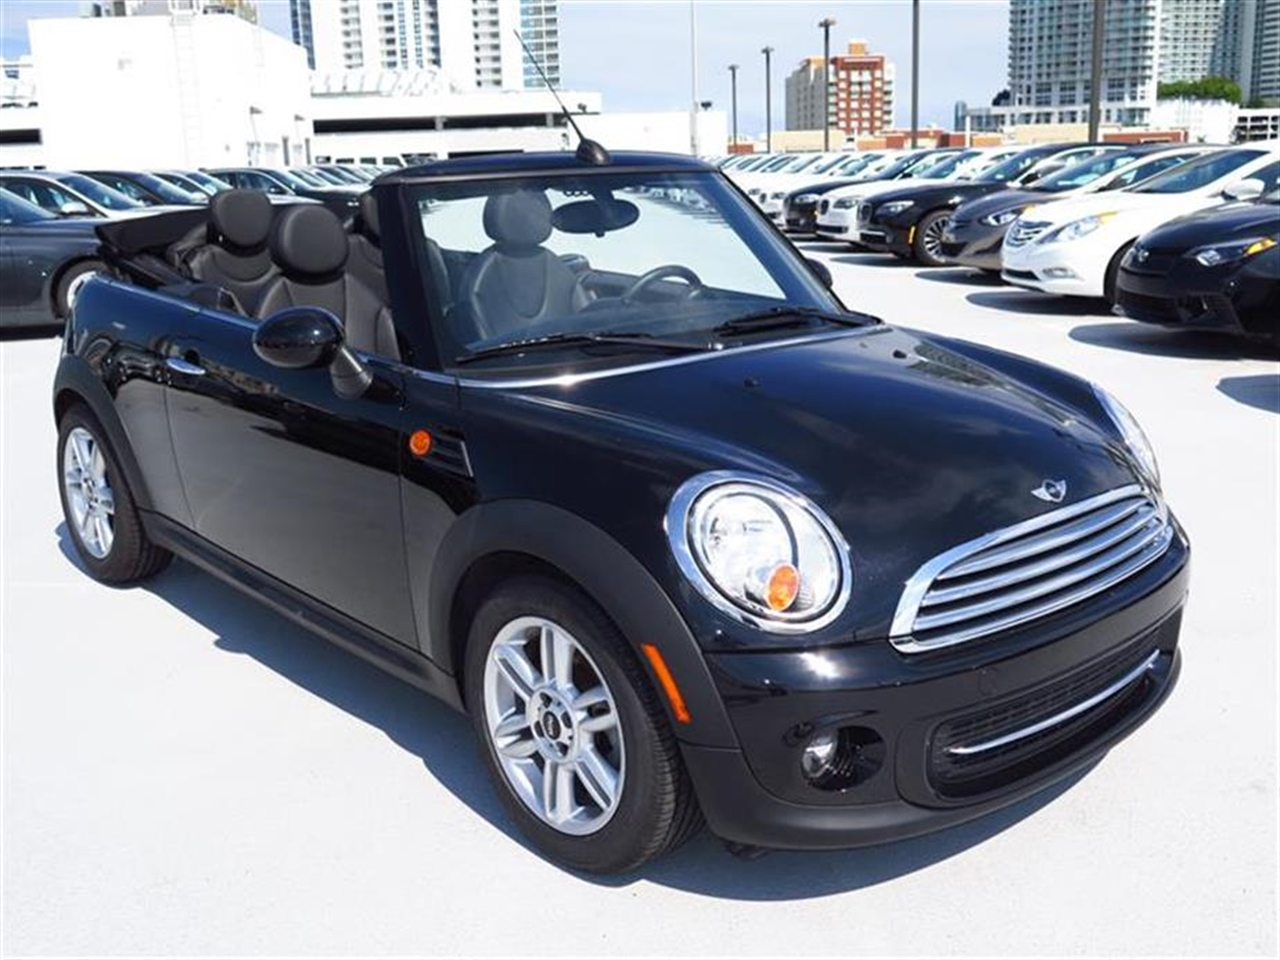 2012 MINI COOPER 2dr 17319 miles 2 front1 rear cupholders 12V auxiliary pwr outlet in cockp